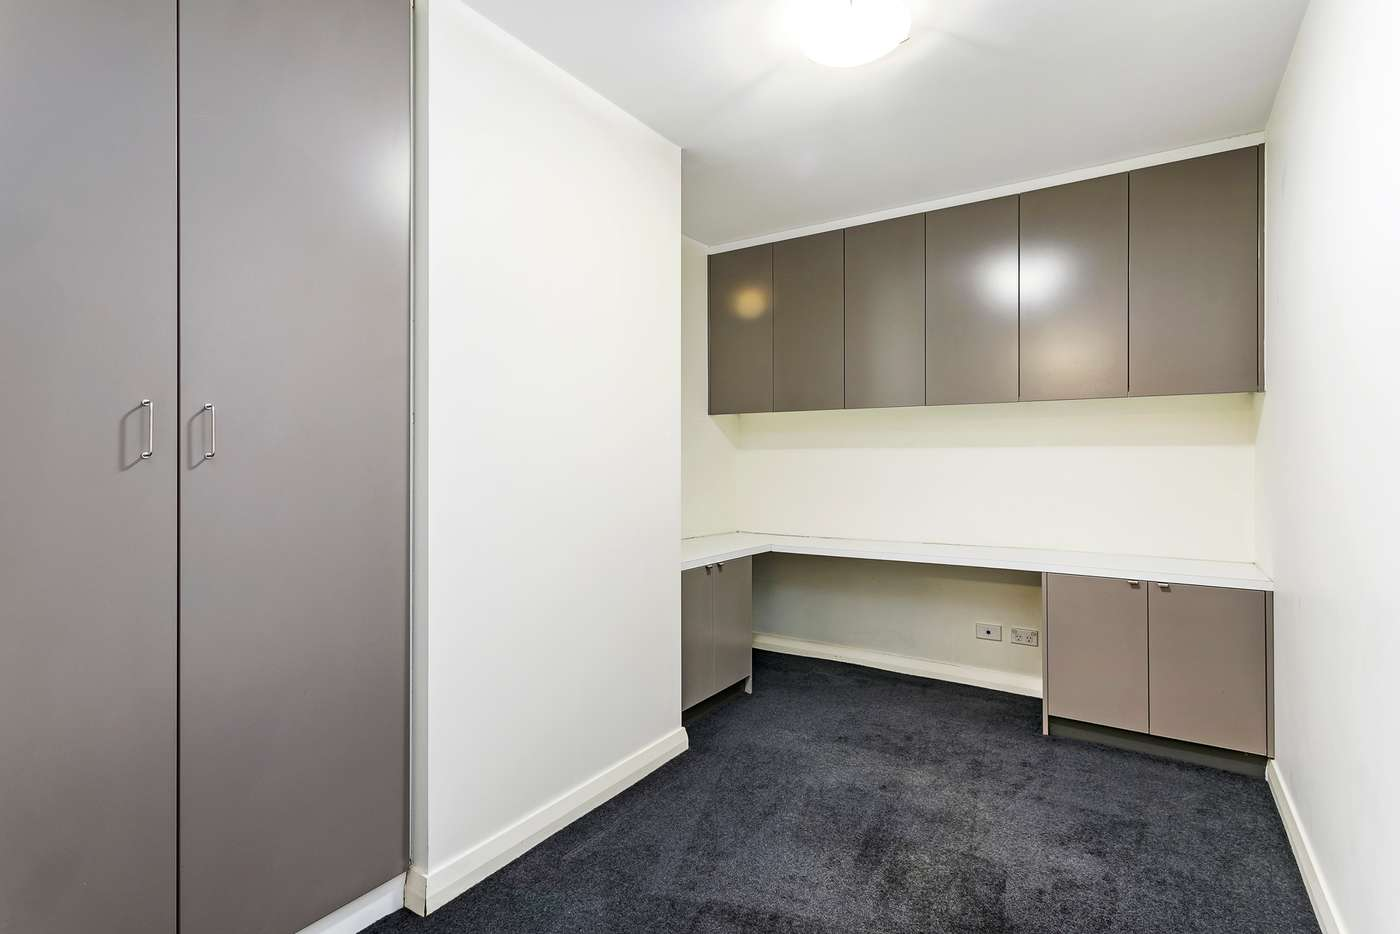 Fifth view of Homely apartment listing, 430/16 Marine Parade, Wentworth Point NSW 2127